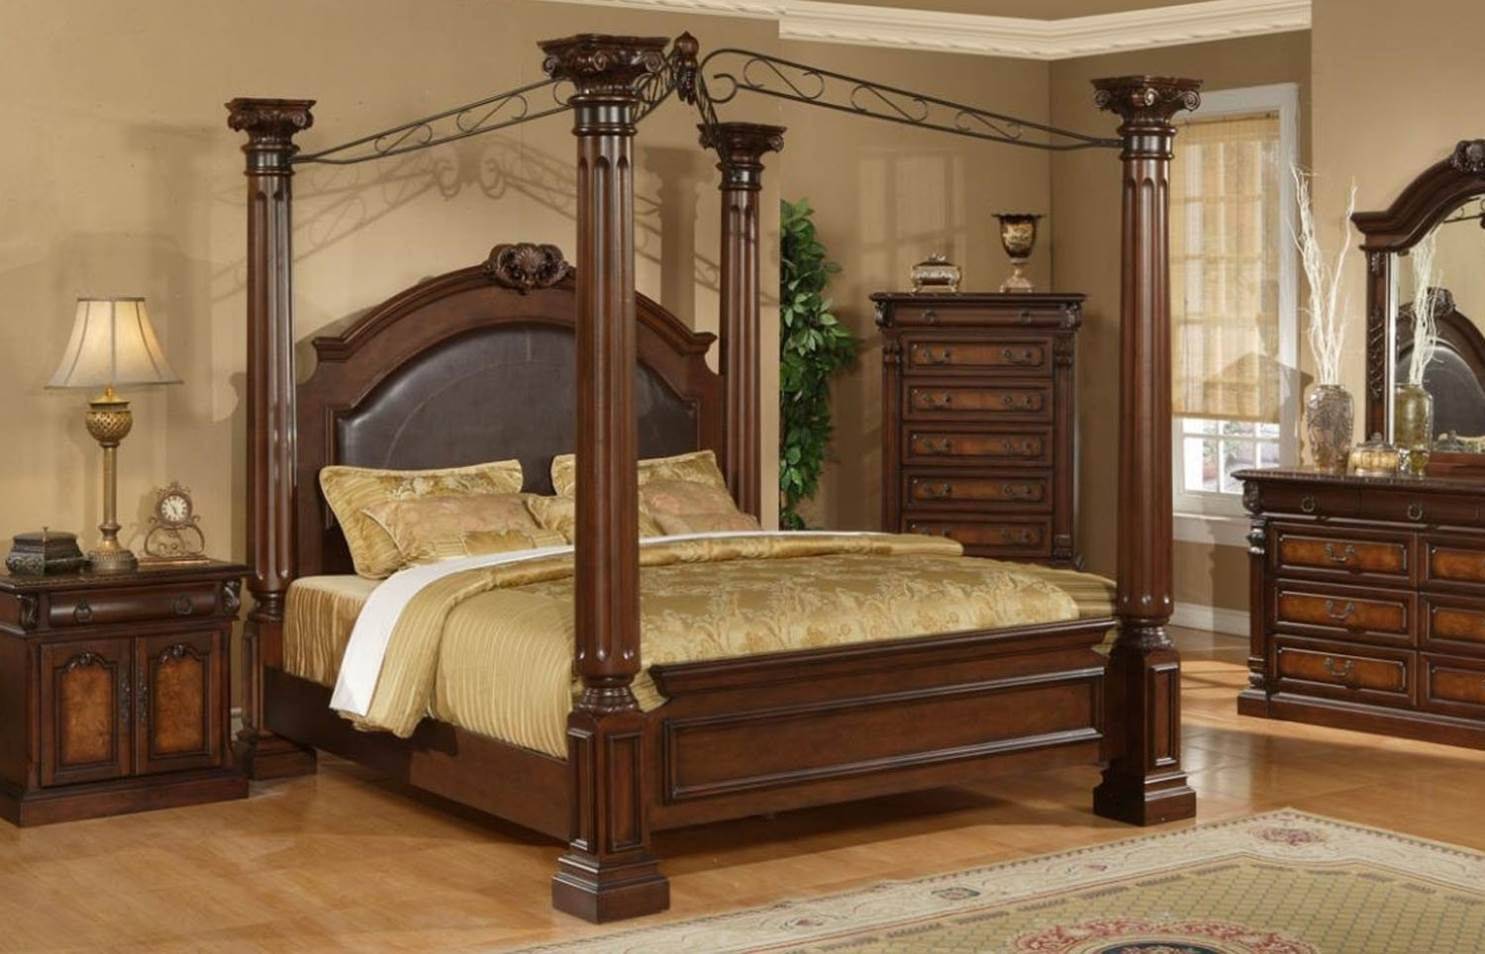 Wooden Canopy Bed Frame